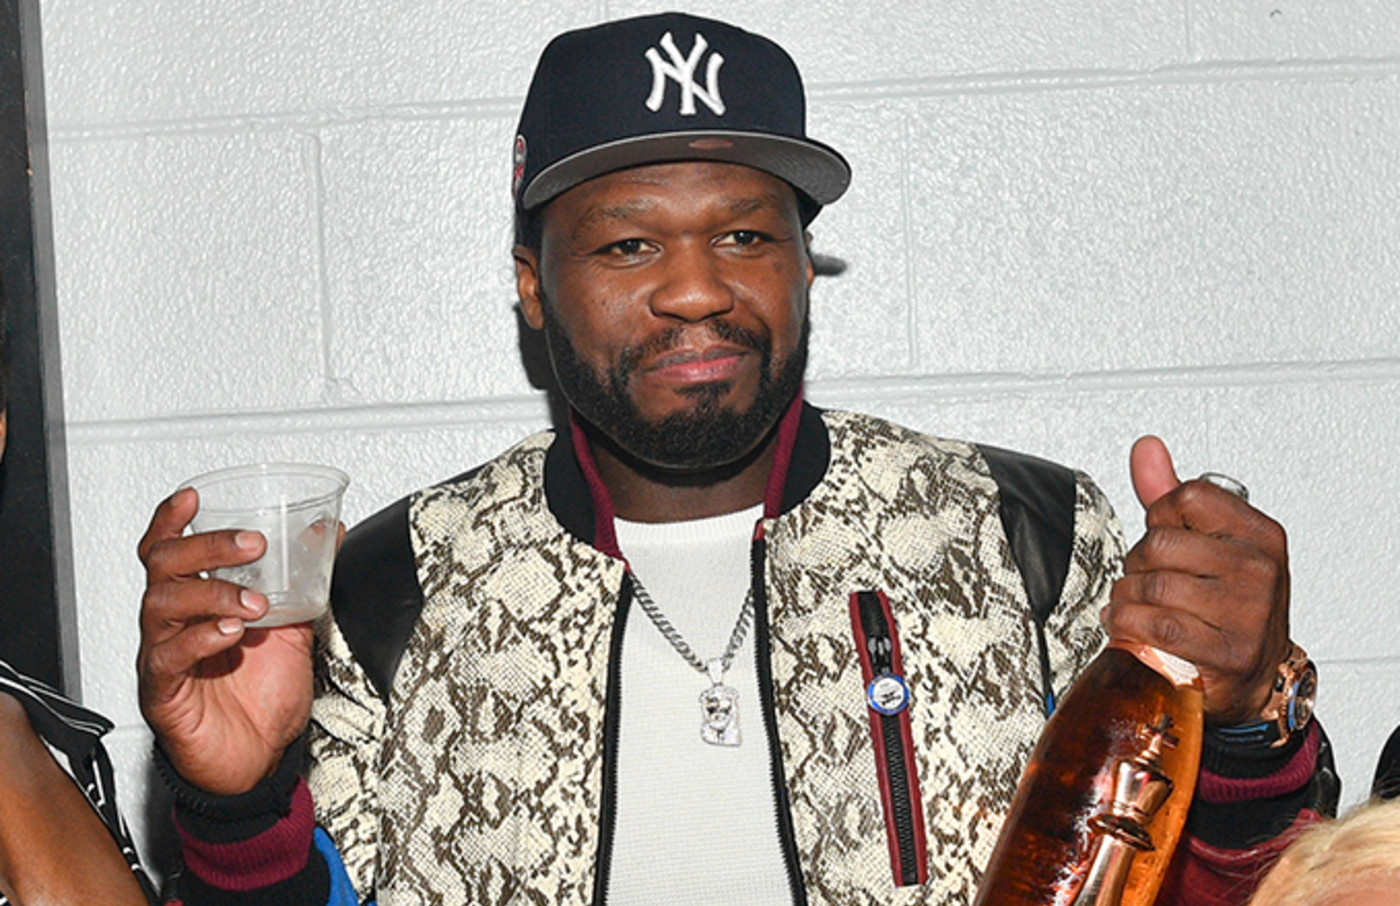 50 Cent Video Porno 50 cent asks for $25k more from teairra mari   complex